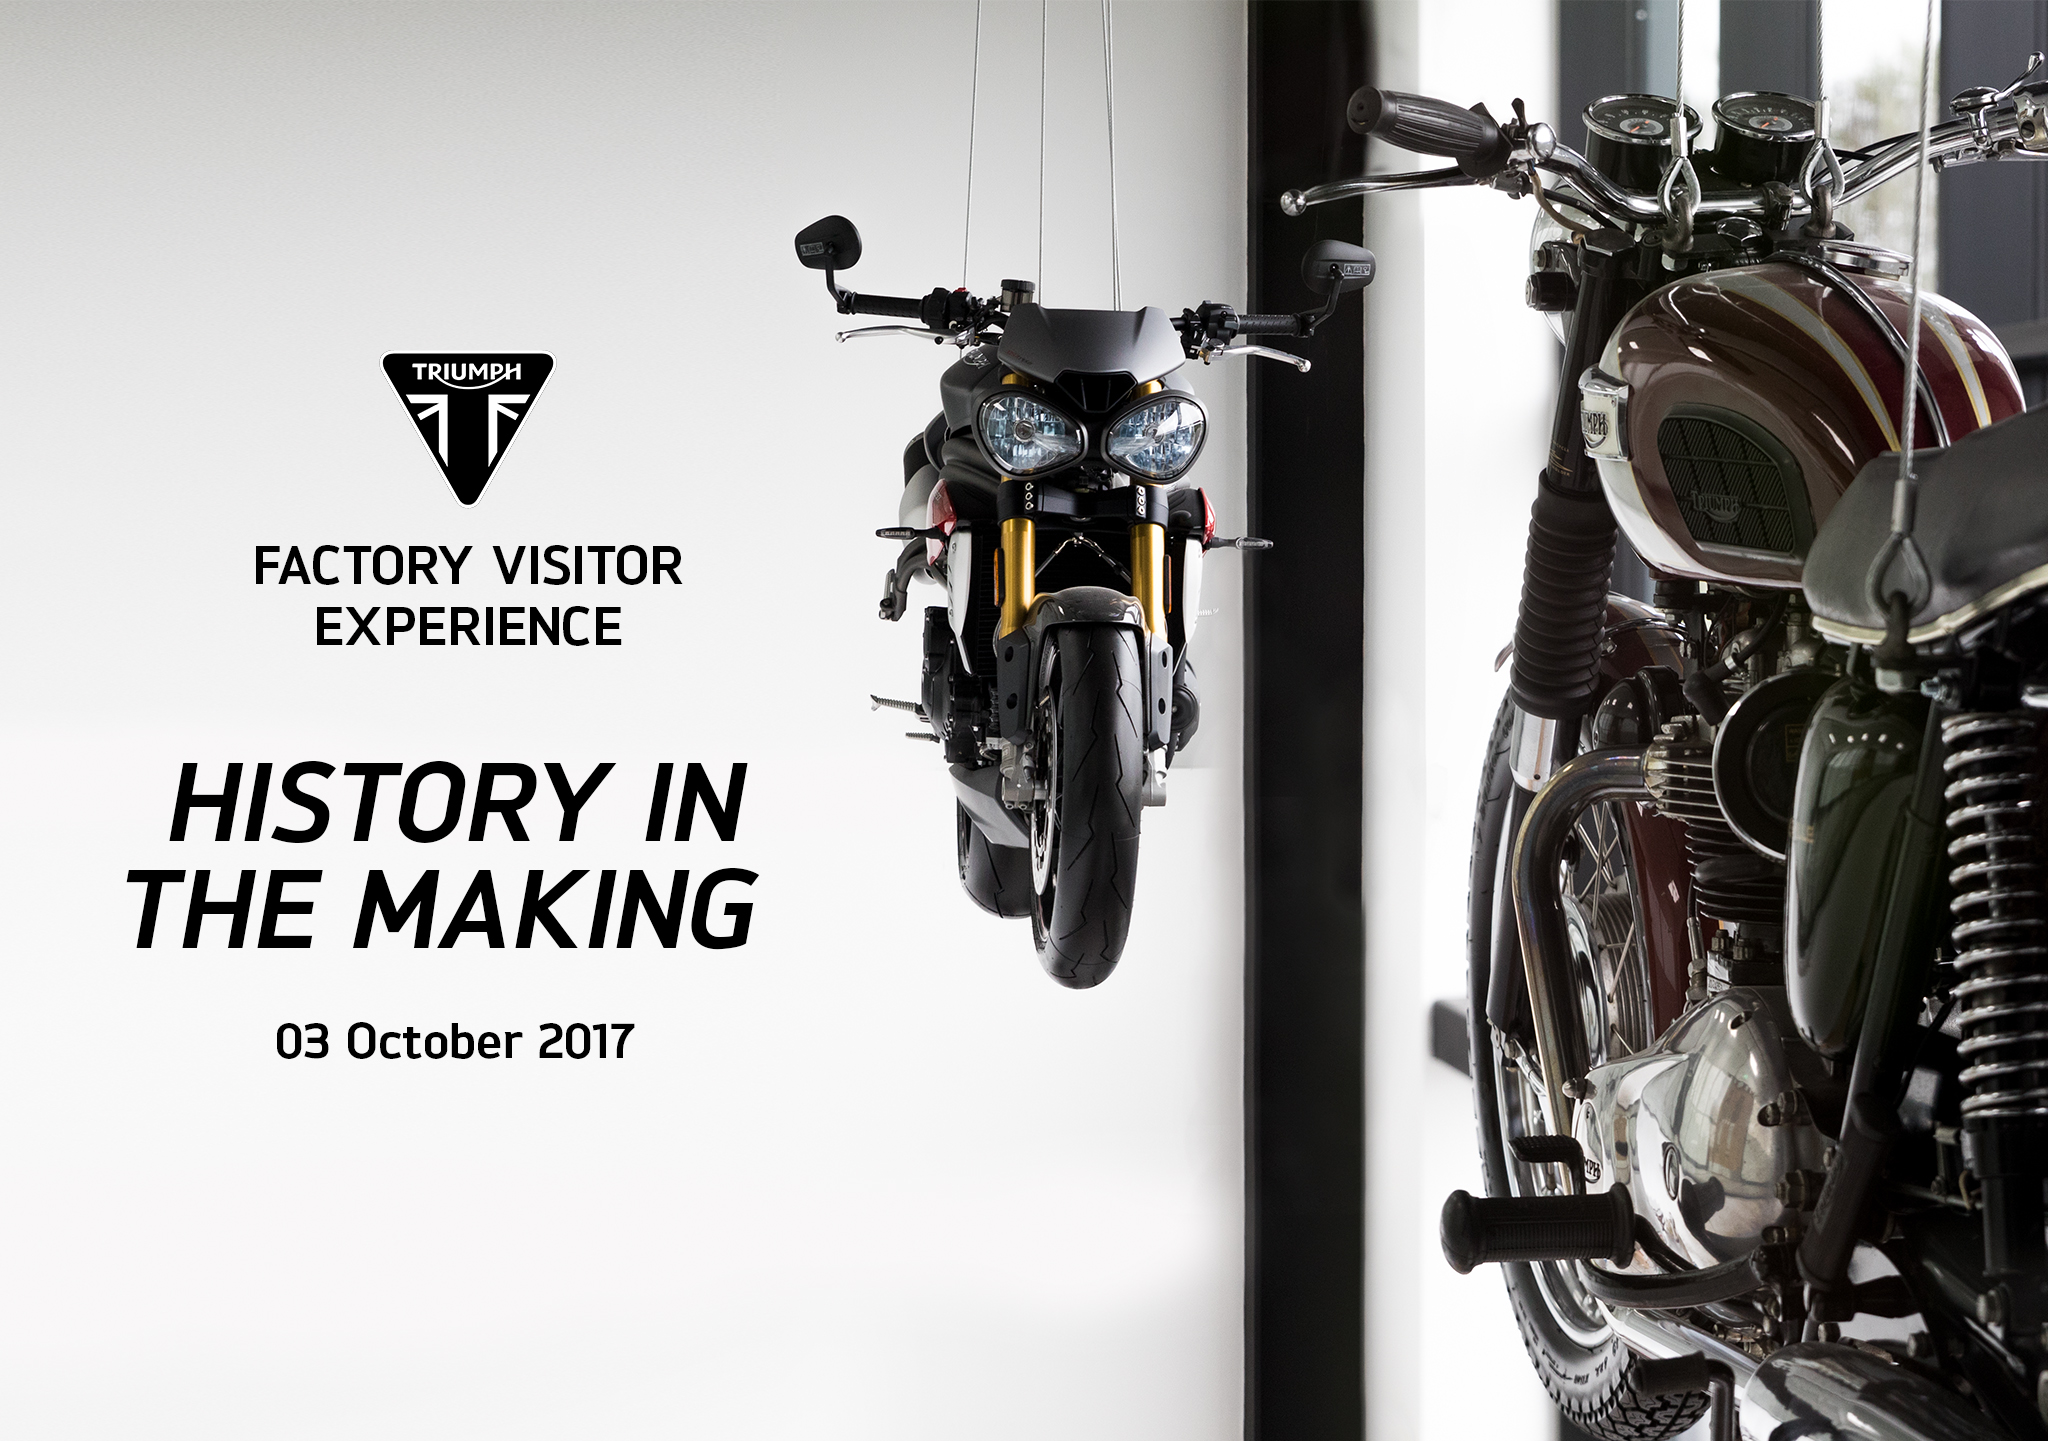 Triumph to open new factory visitor centre next month, with mystery new model reveal